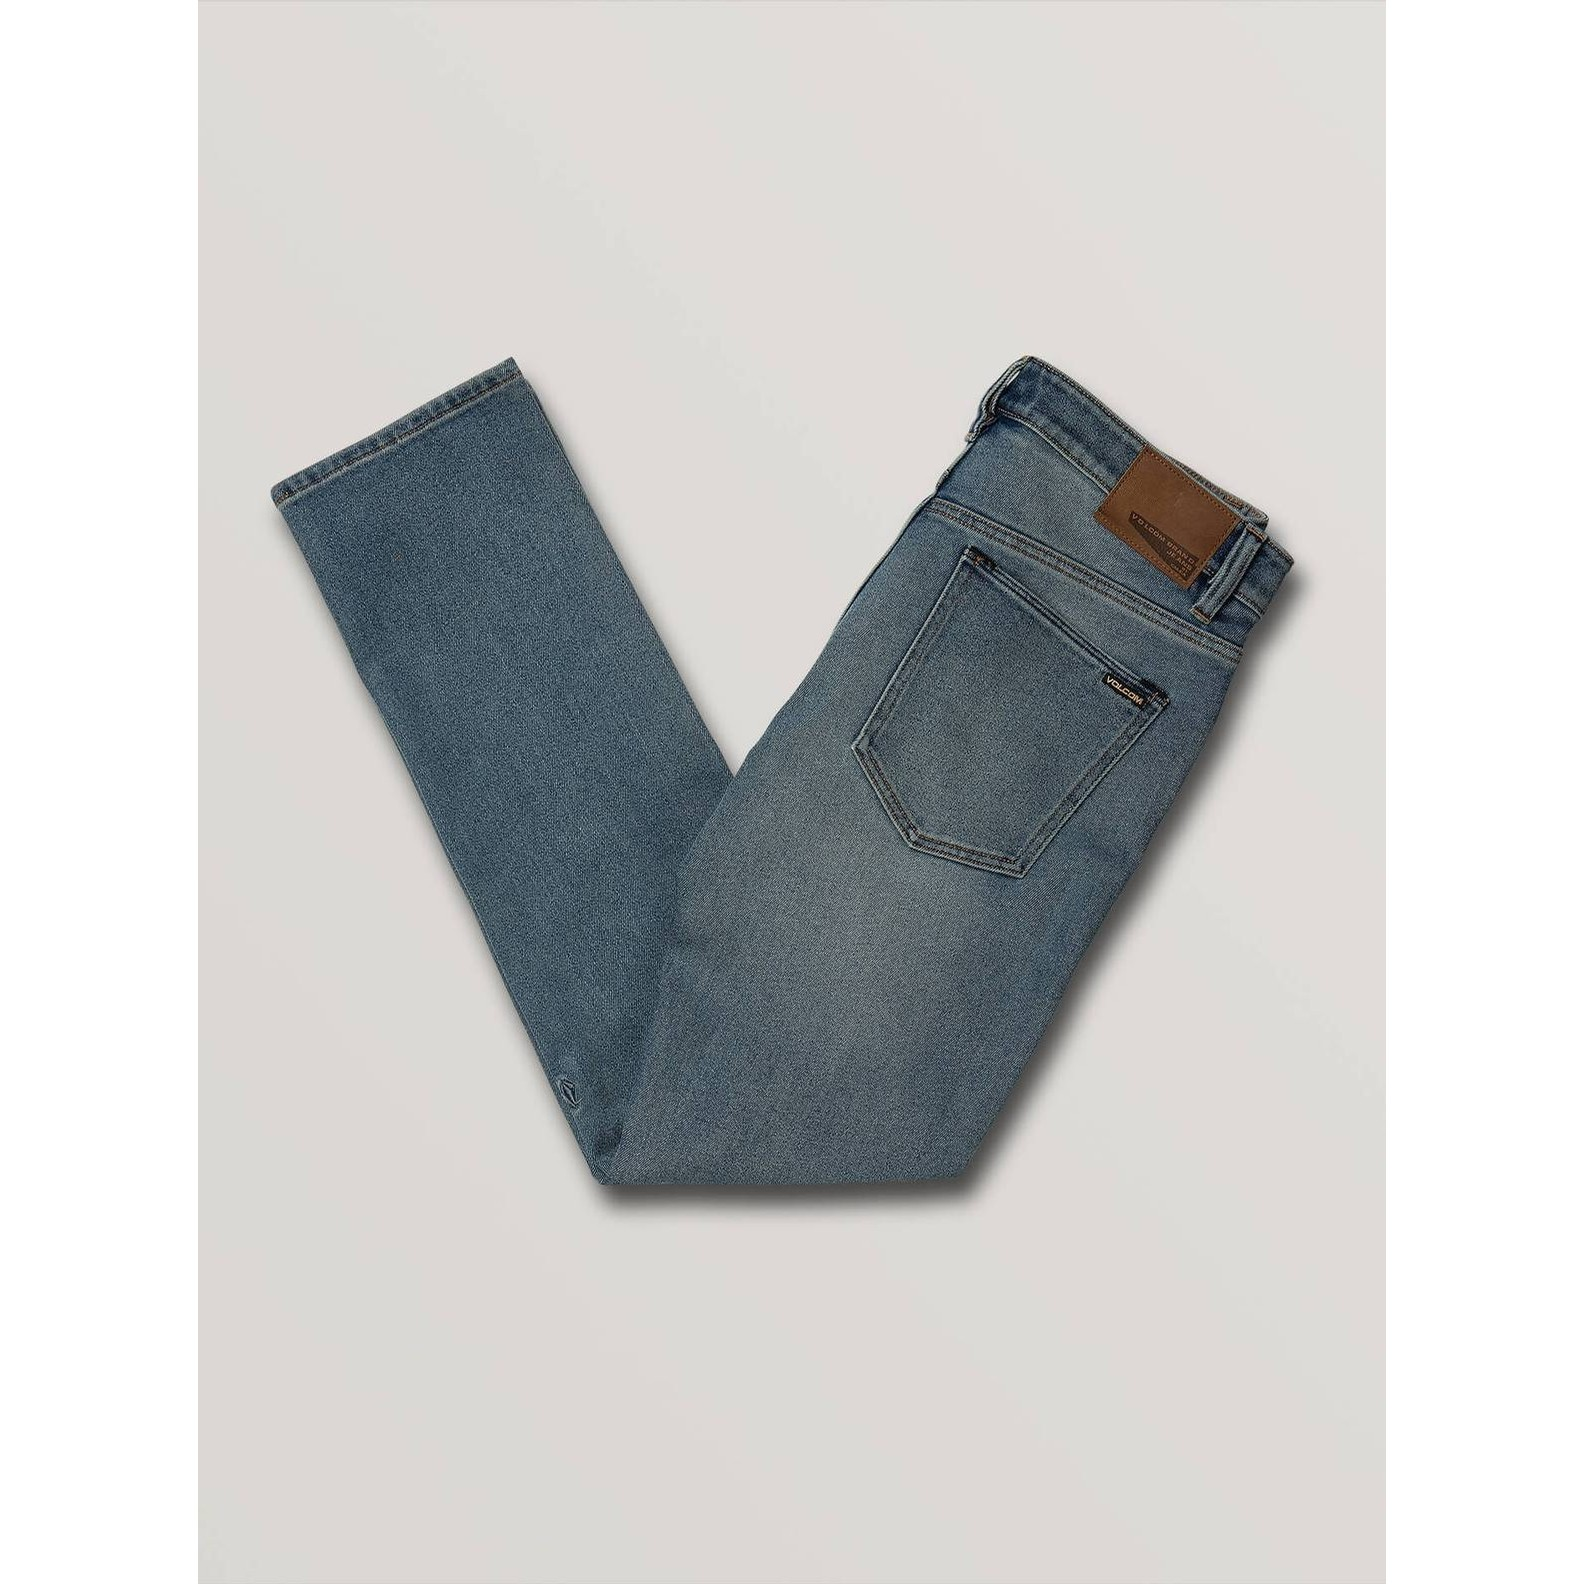 Vorta Denim (Vintage Blue)